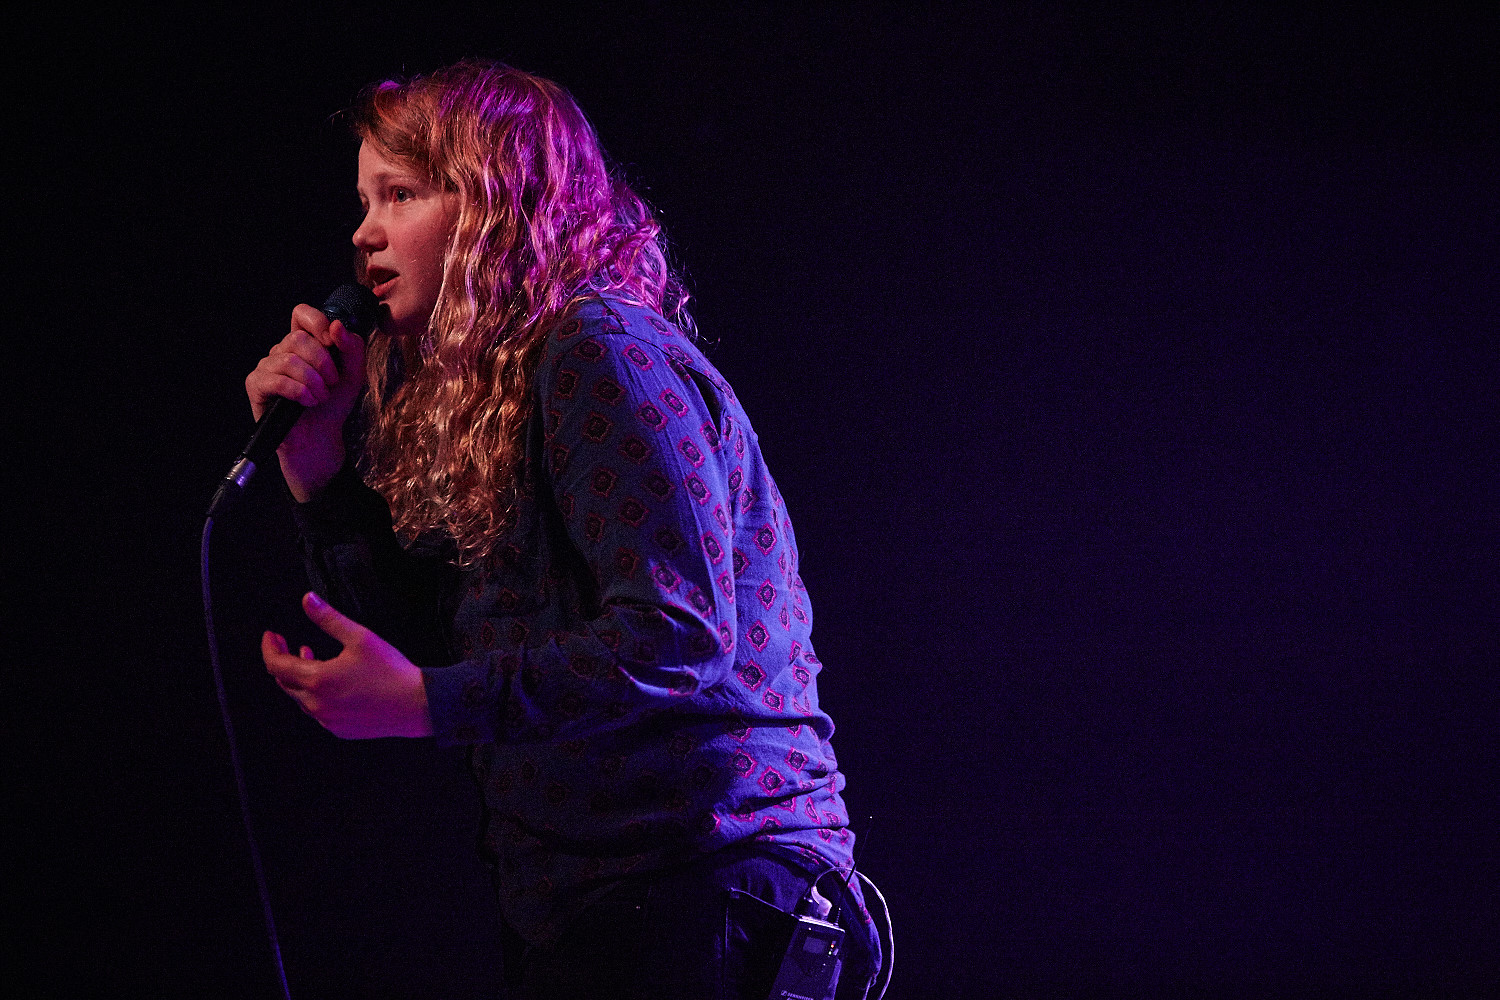 2015_02_17_Kate_Tempest_Nottingham 10.jpg